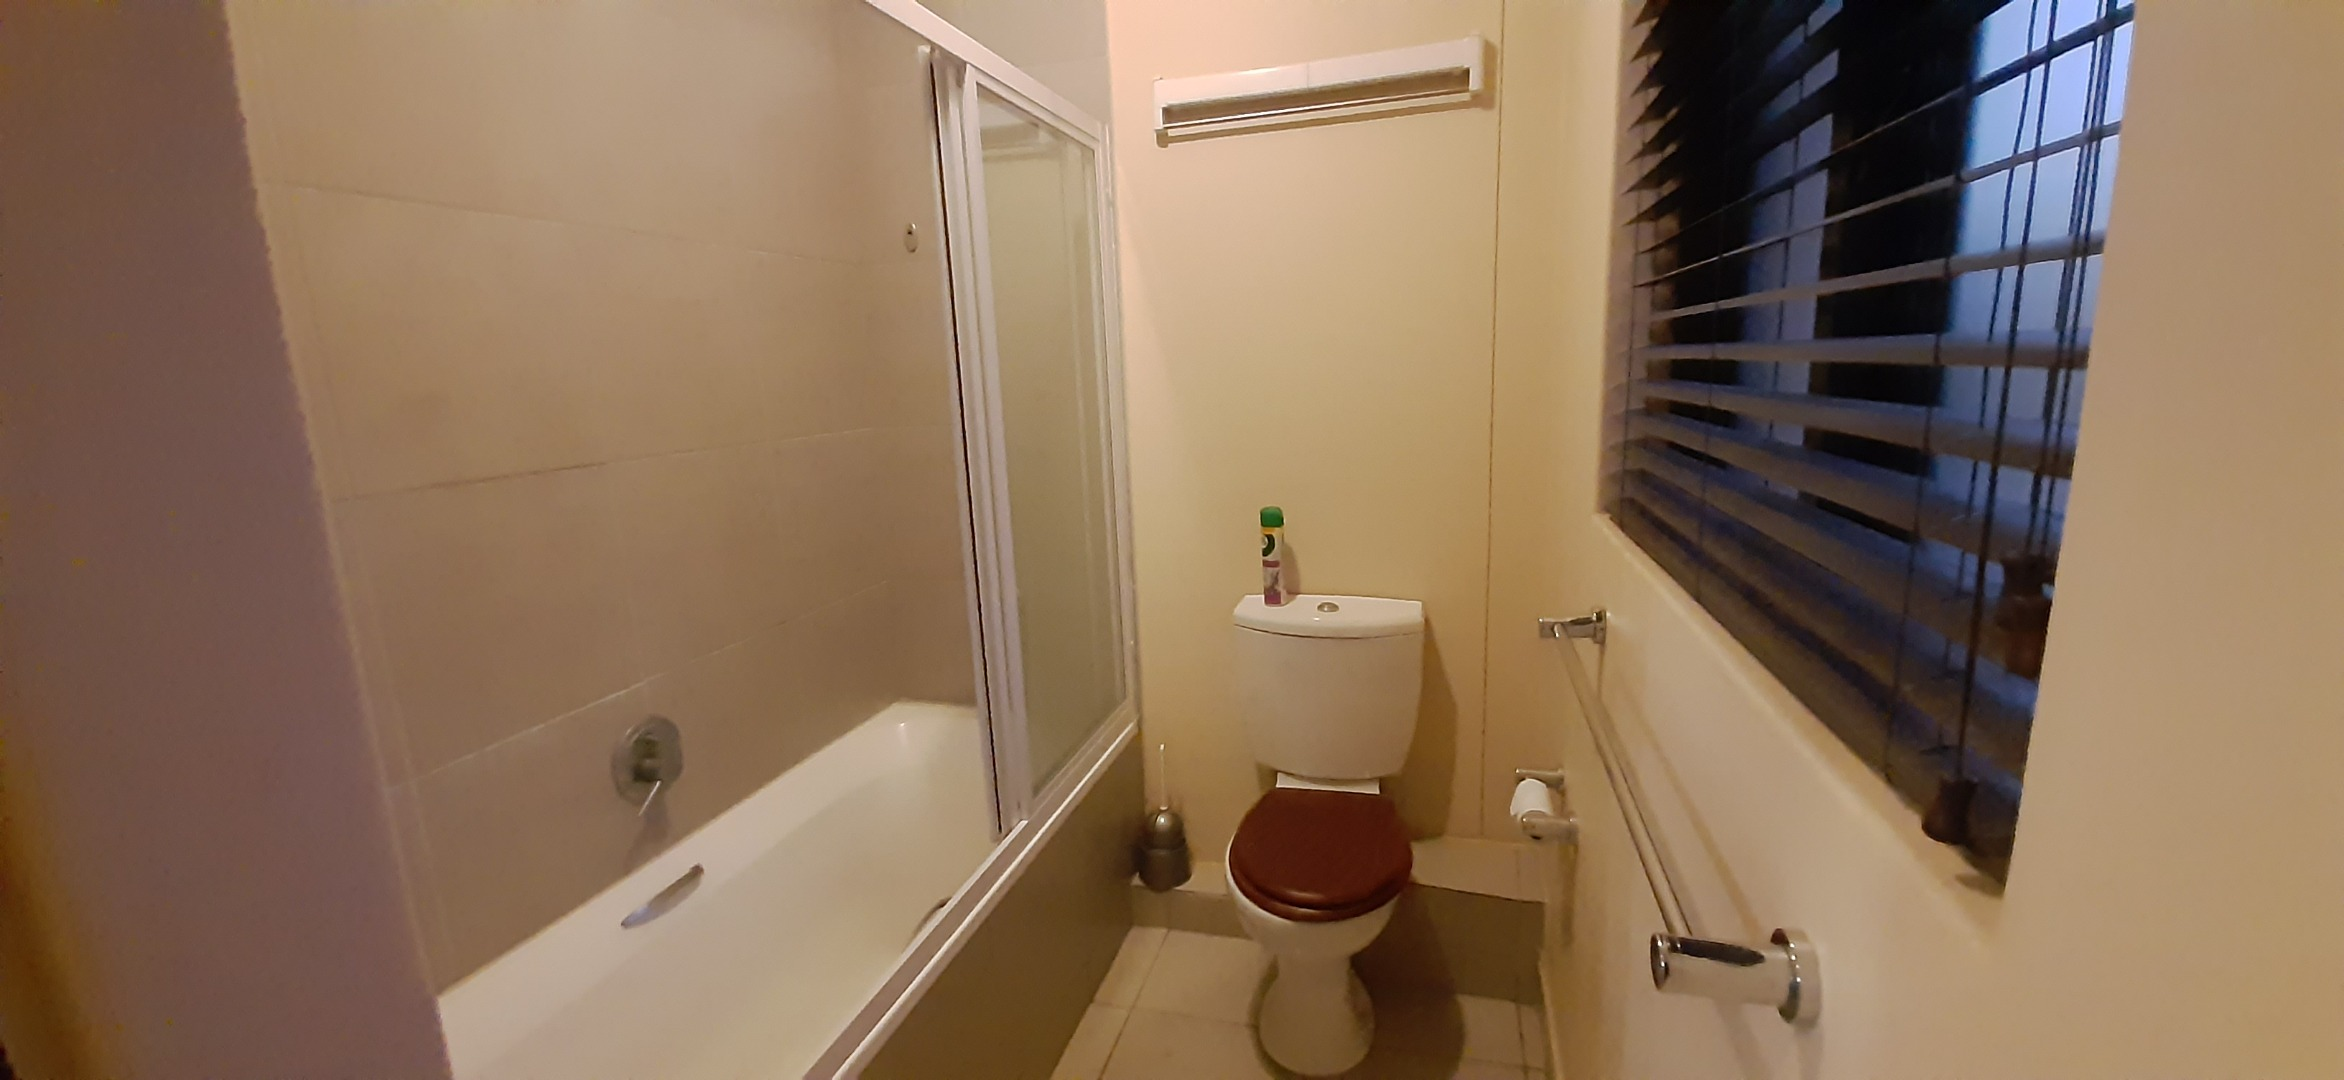 1 Bedroom Apartment / Flat To Rent in Westville Central